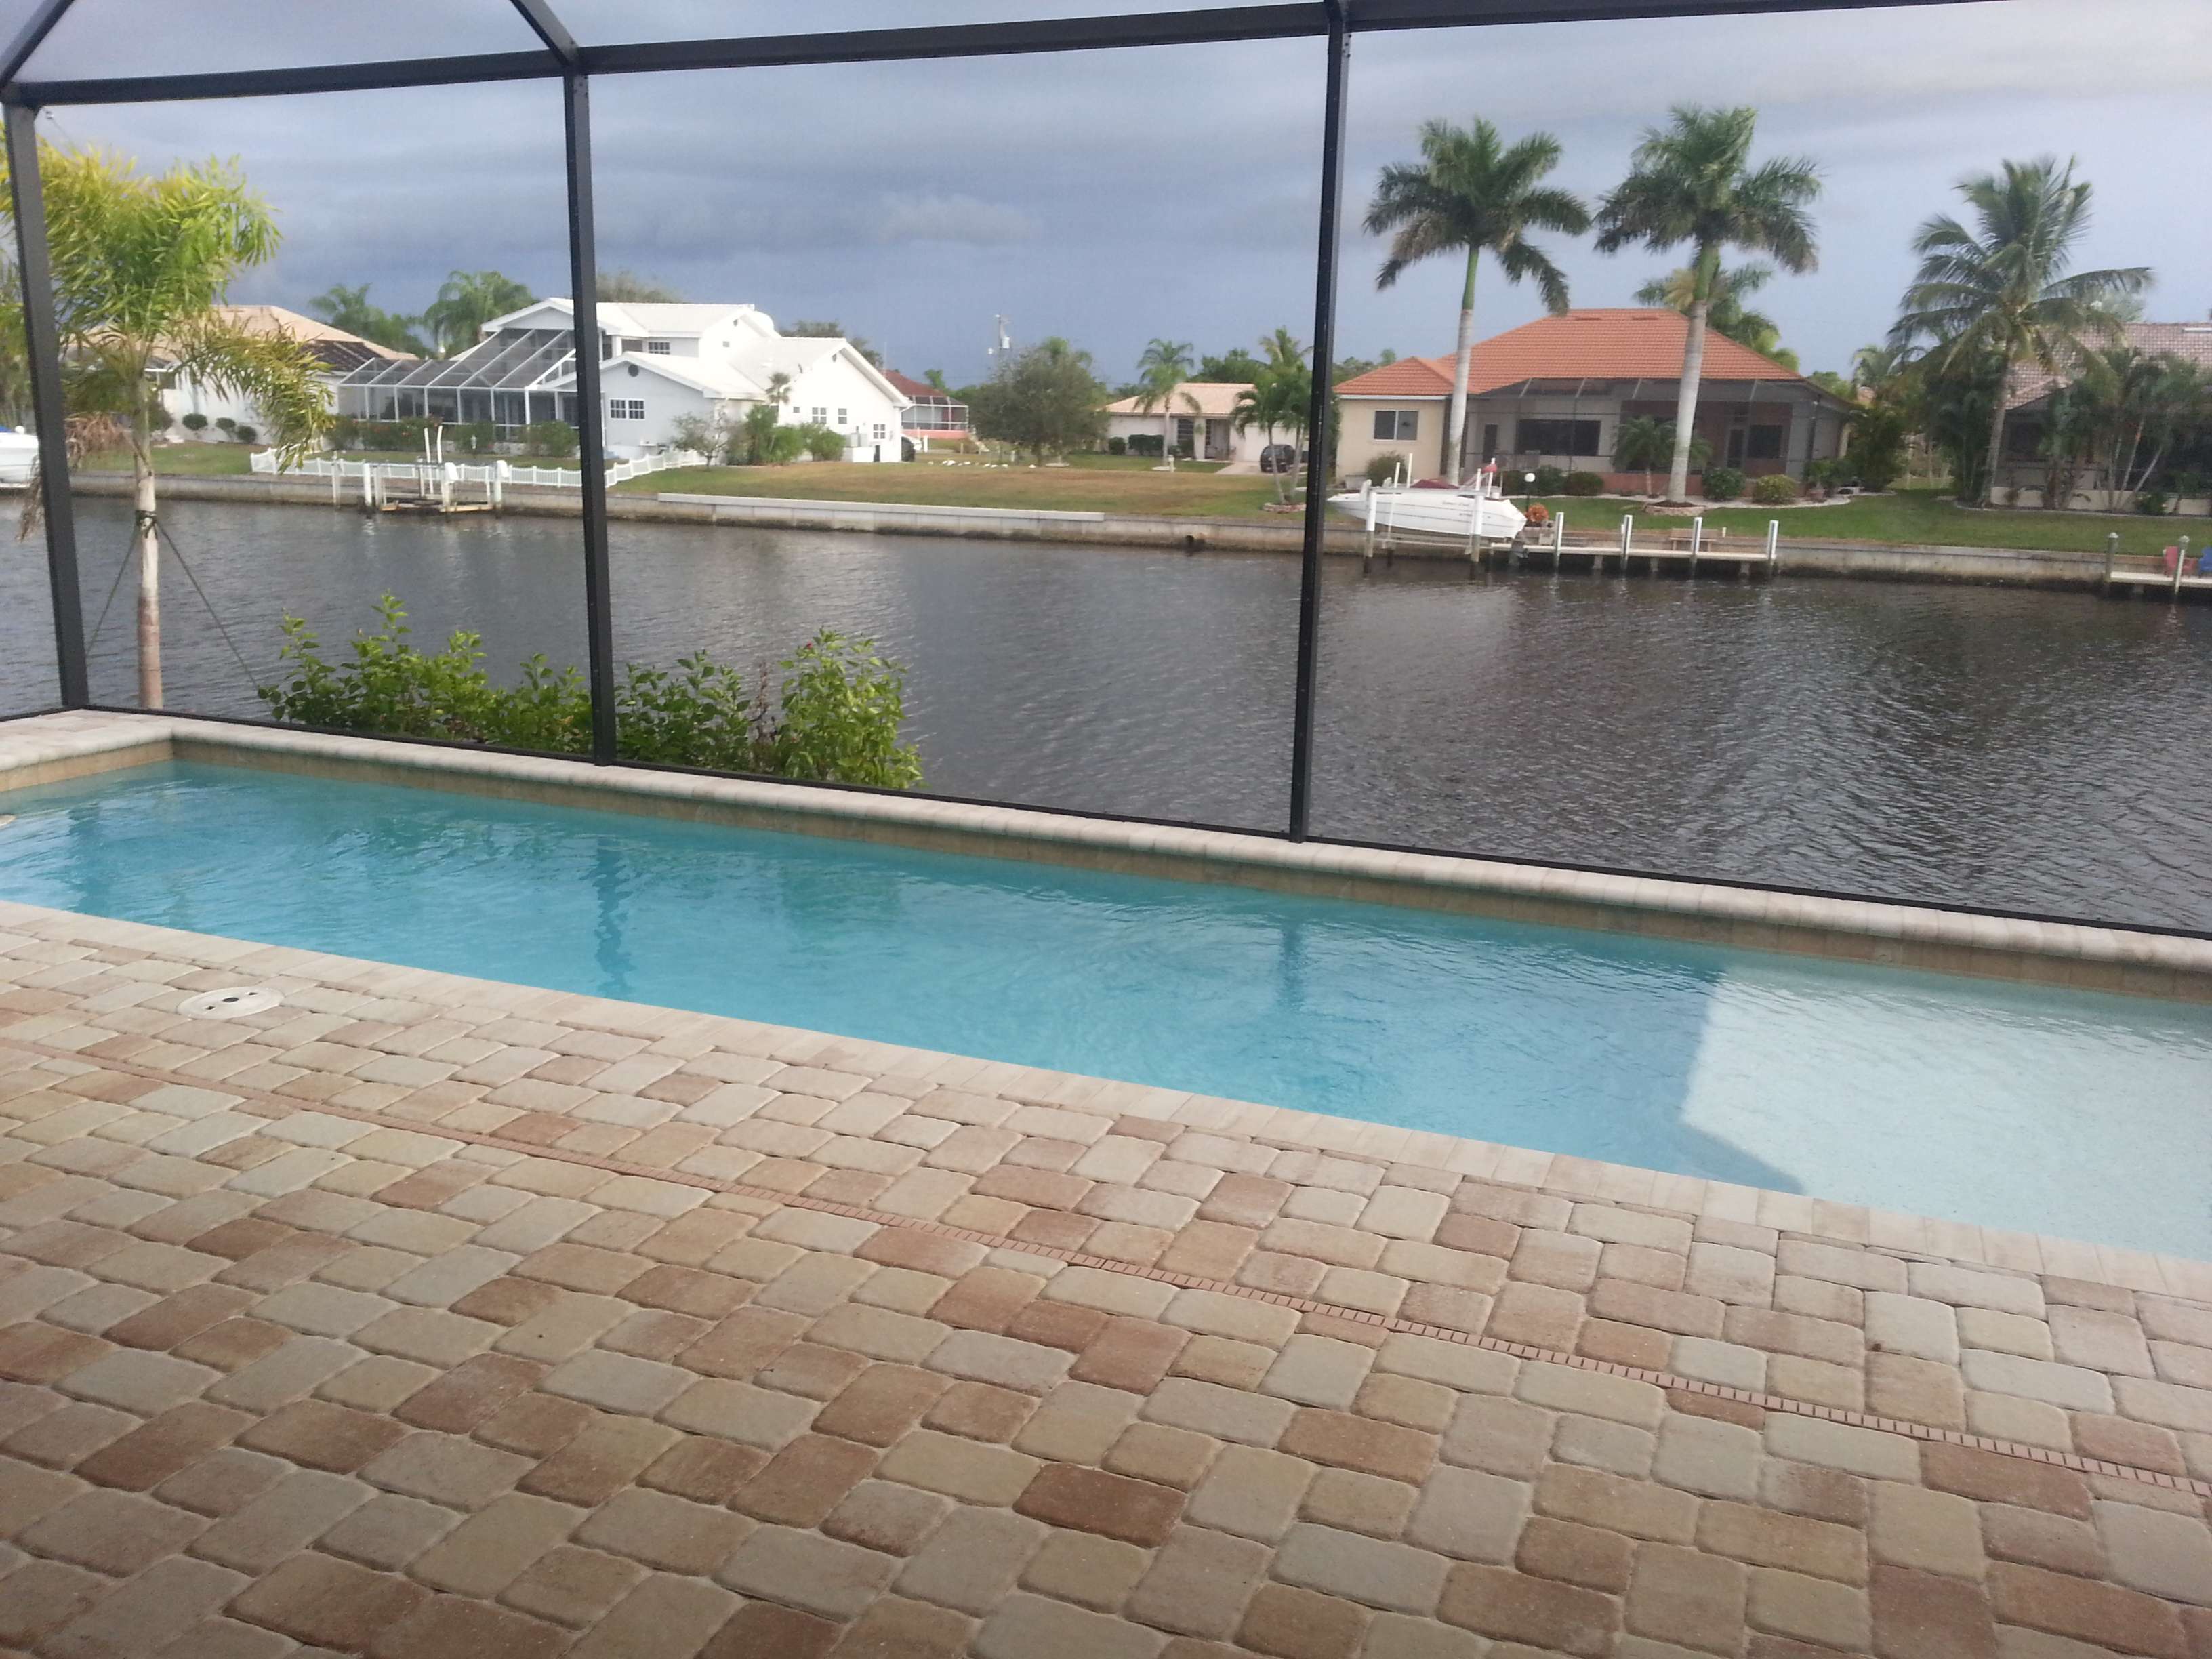 ny-big-sun-realty-florida-homes-new-york-big-sun-realty-sarasota